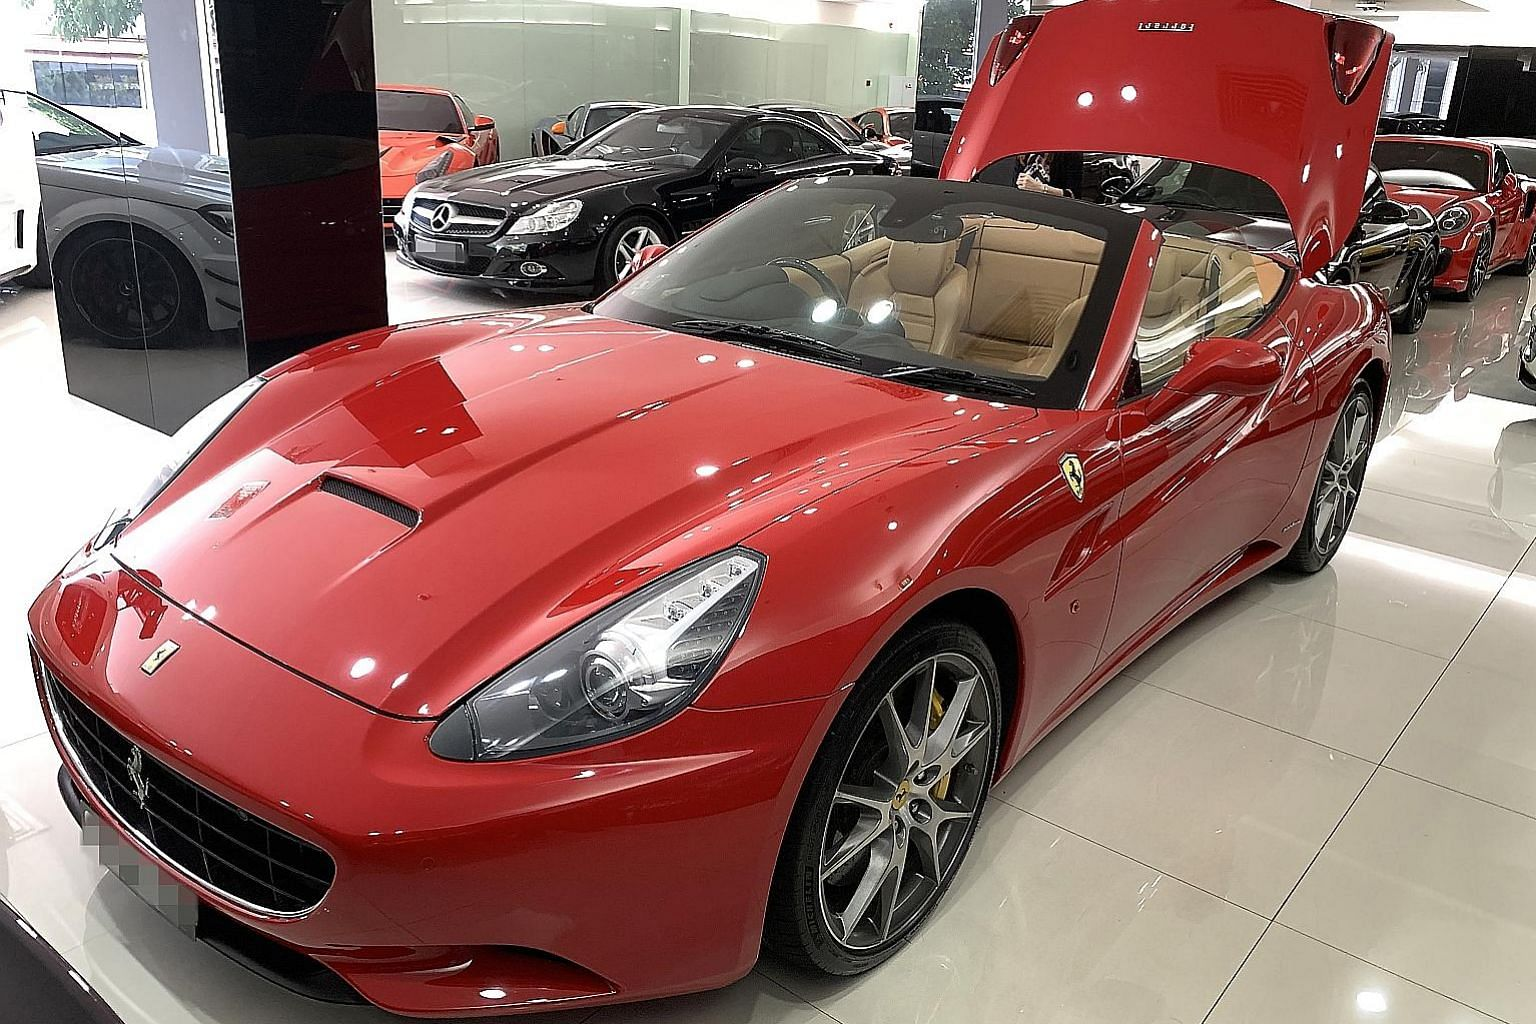 With the loophole in car loan regulations, a buyer can get a 90 per cent loan option for this pre-owned Ferrari priced at $298,000, which means only $30,000 is required for the cash down payment instead of $119,200.